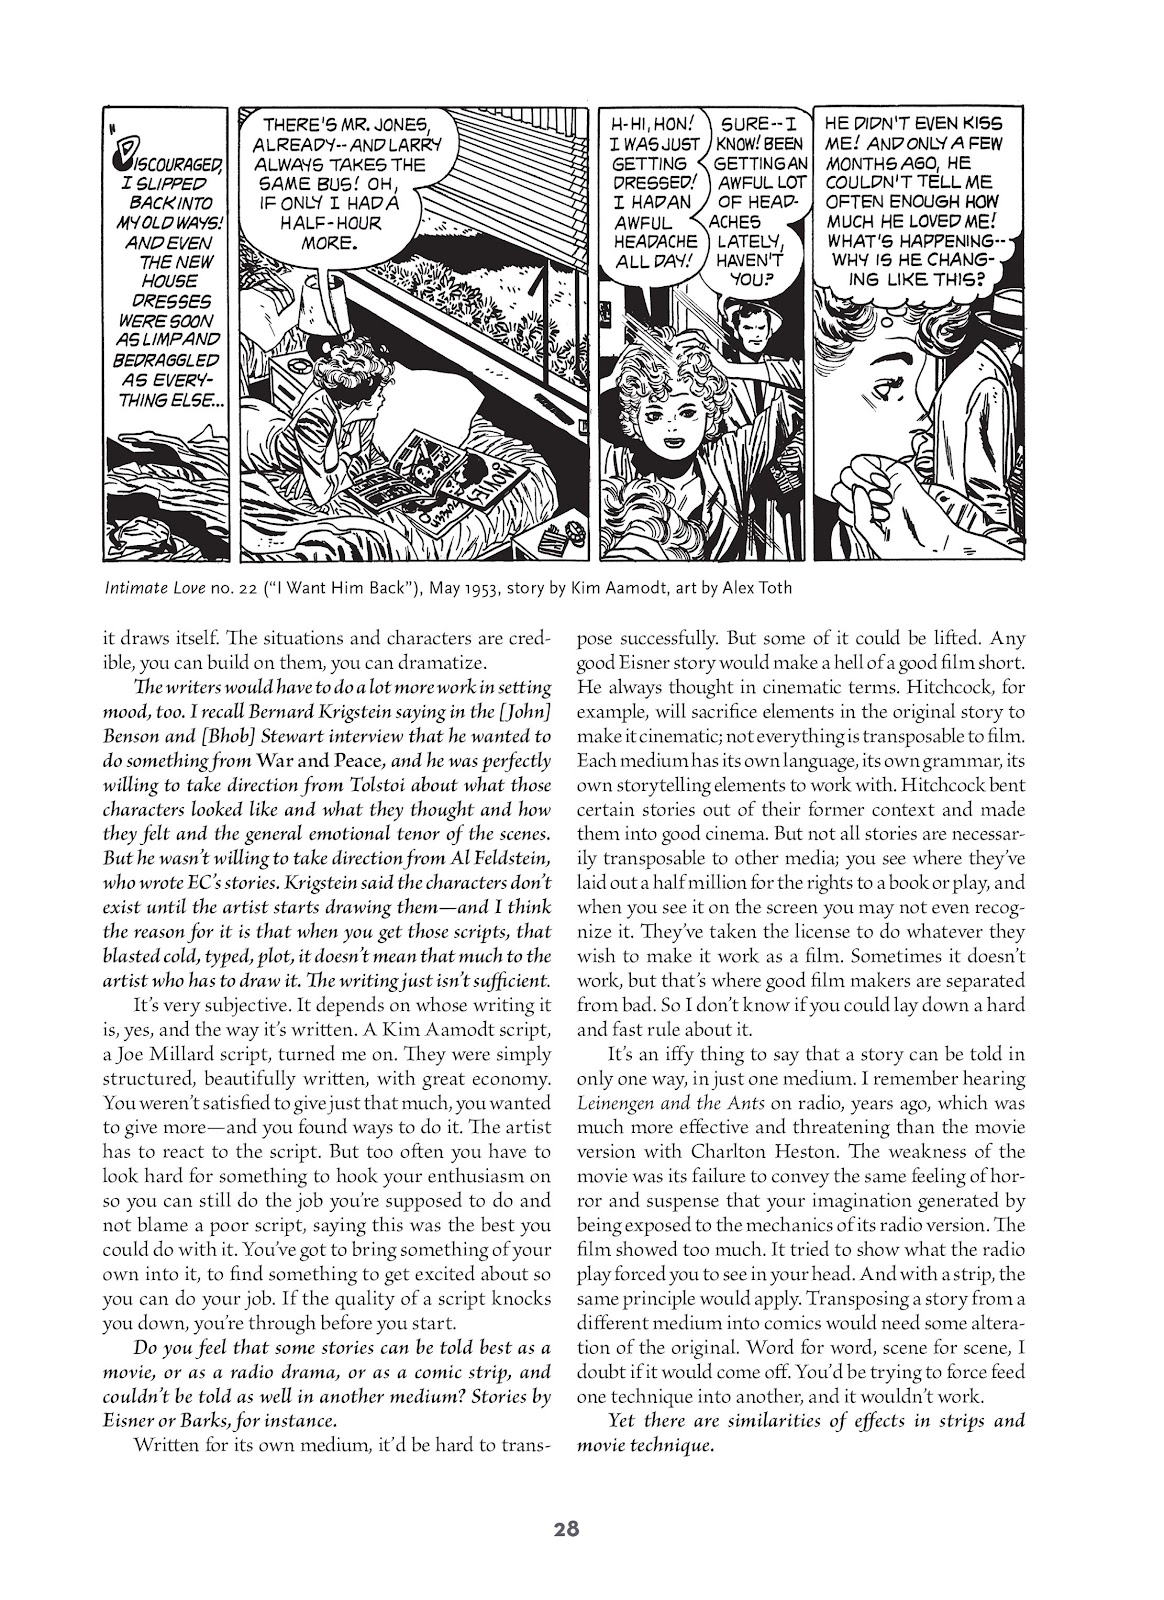 Read online Setting the Standard: Comics by Alex Toth 1952-1954 comic -  Issue # TPB (Part 1) - 27